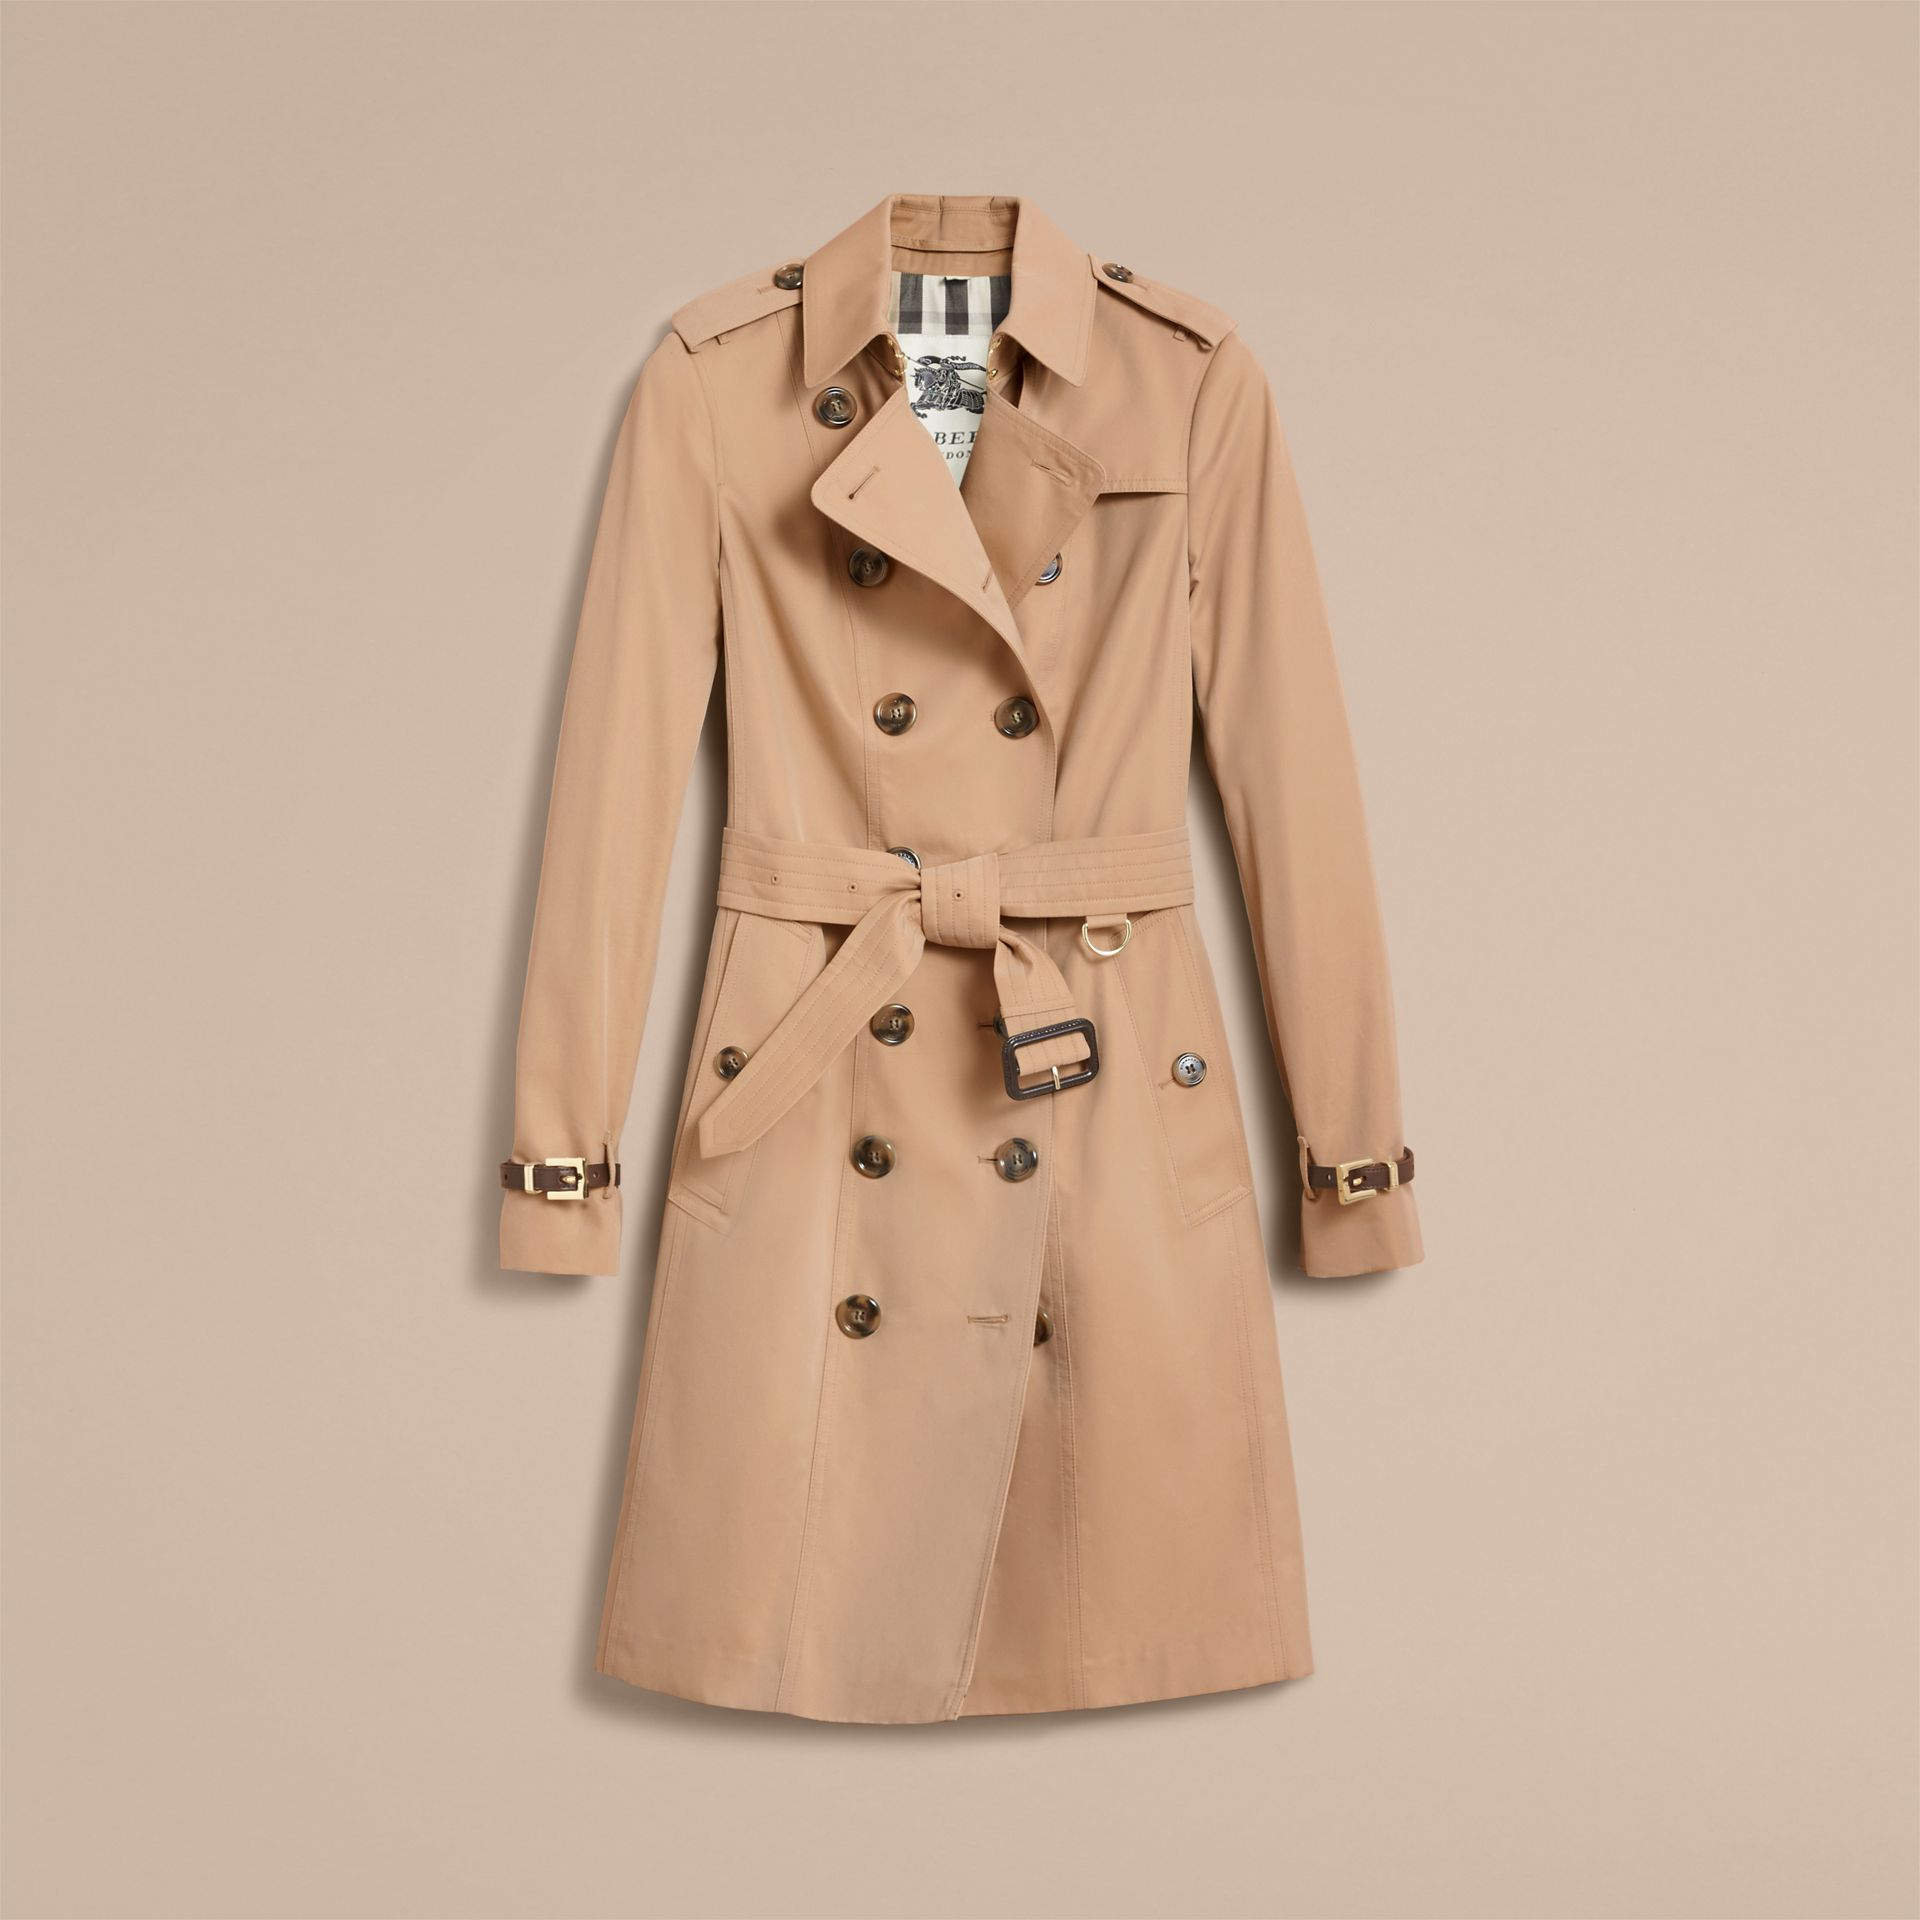 Trench-coat en gabardine de coton avec bordure en cuir - photo de la galerie 4